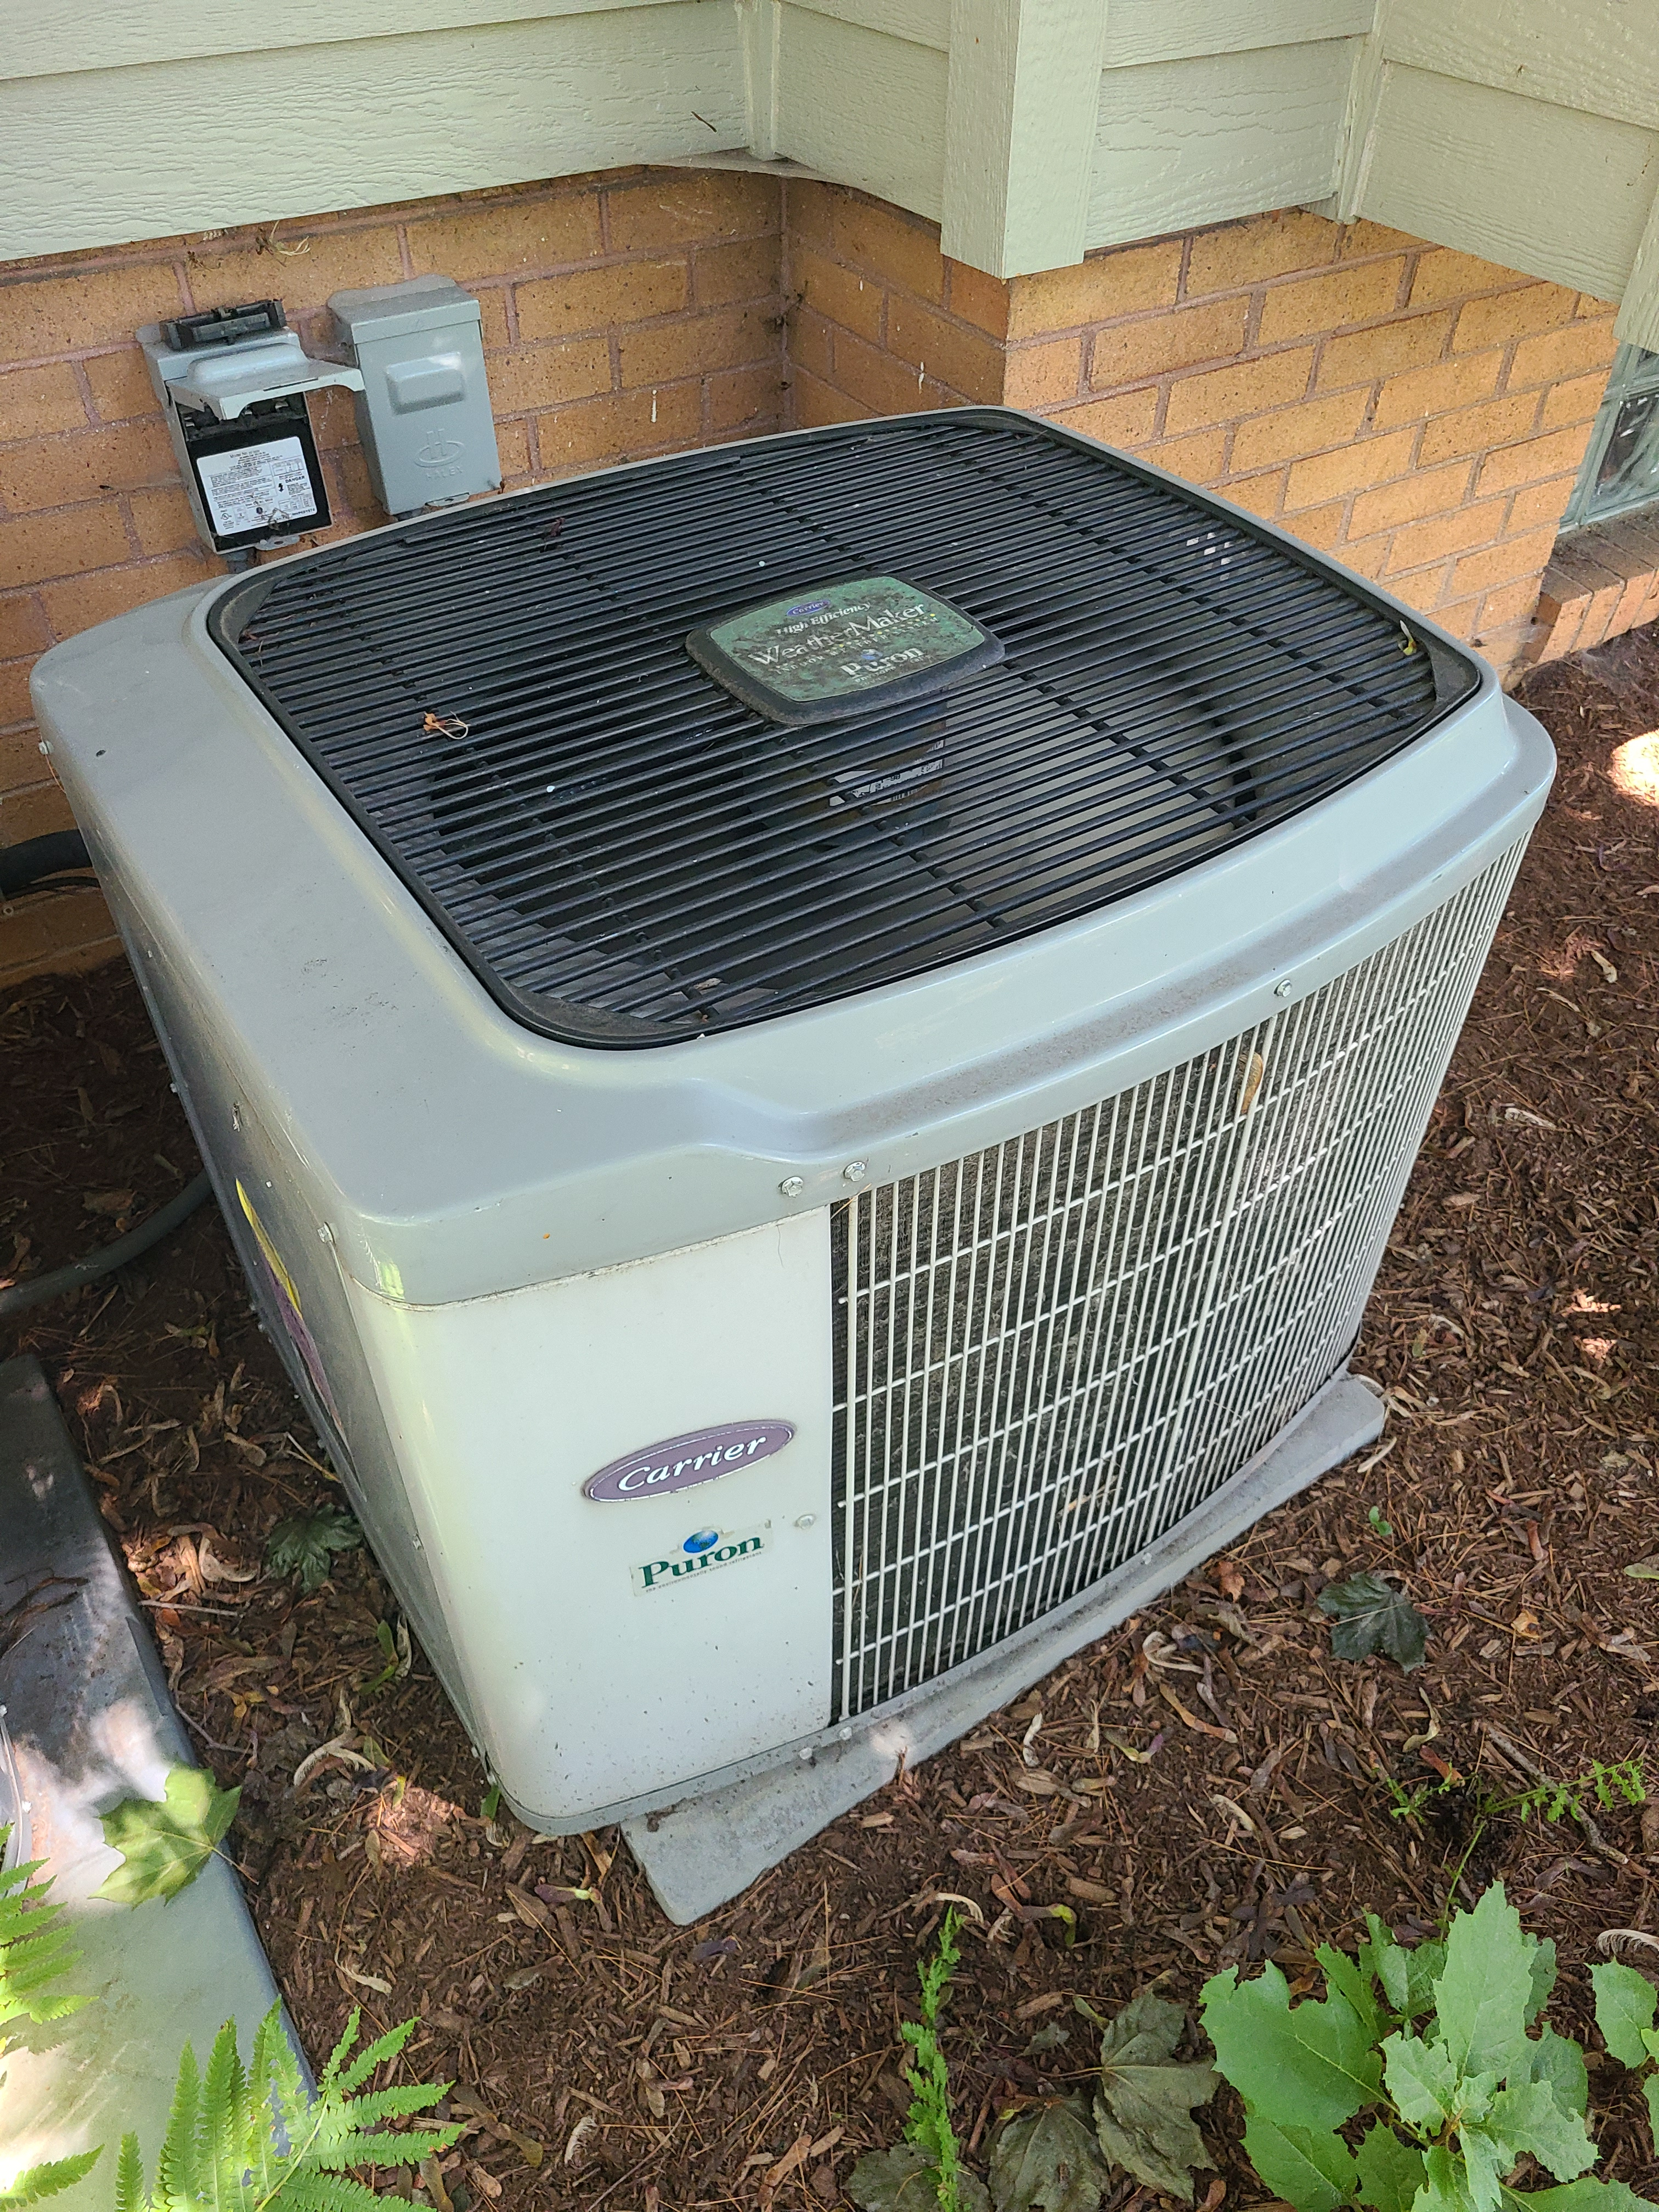 Carrier ac summer tune up. System cleaned and checked and ready for summer.